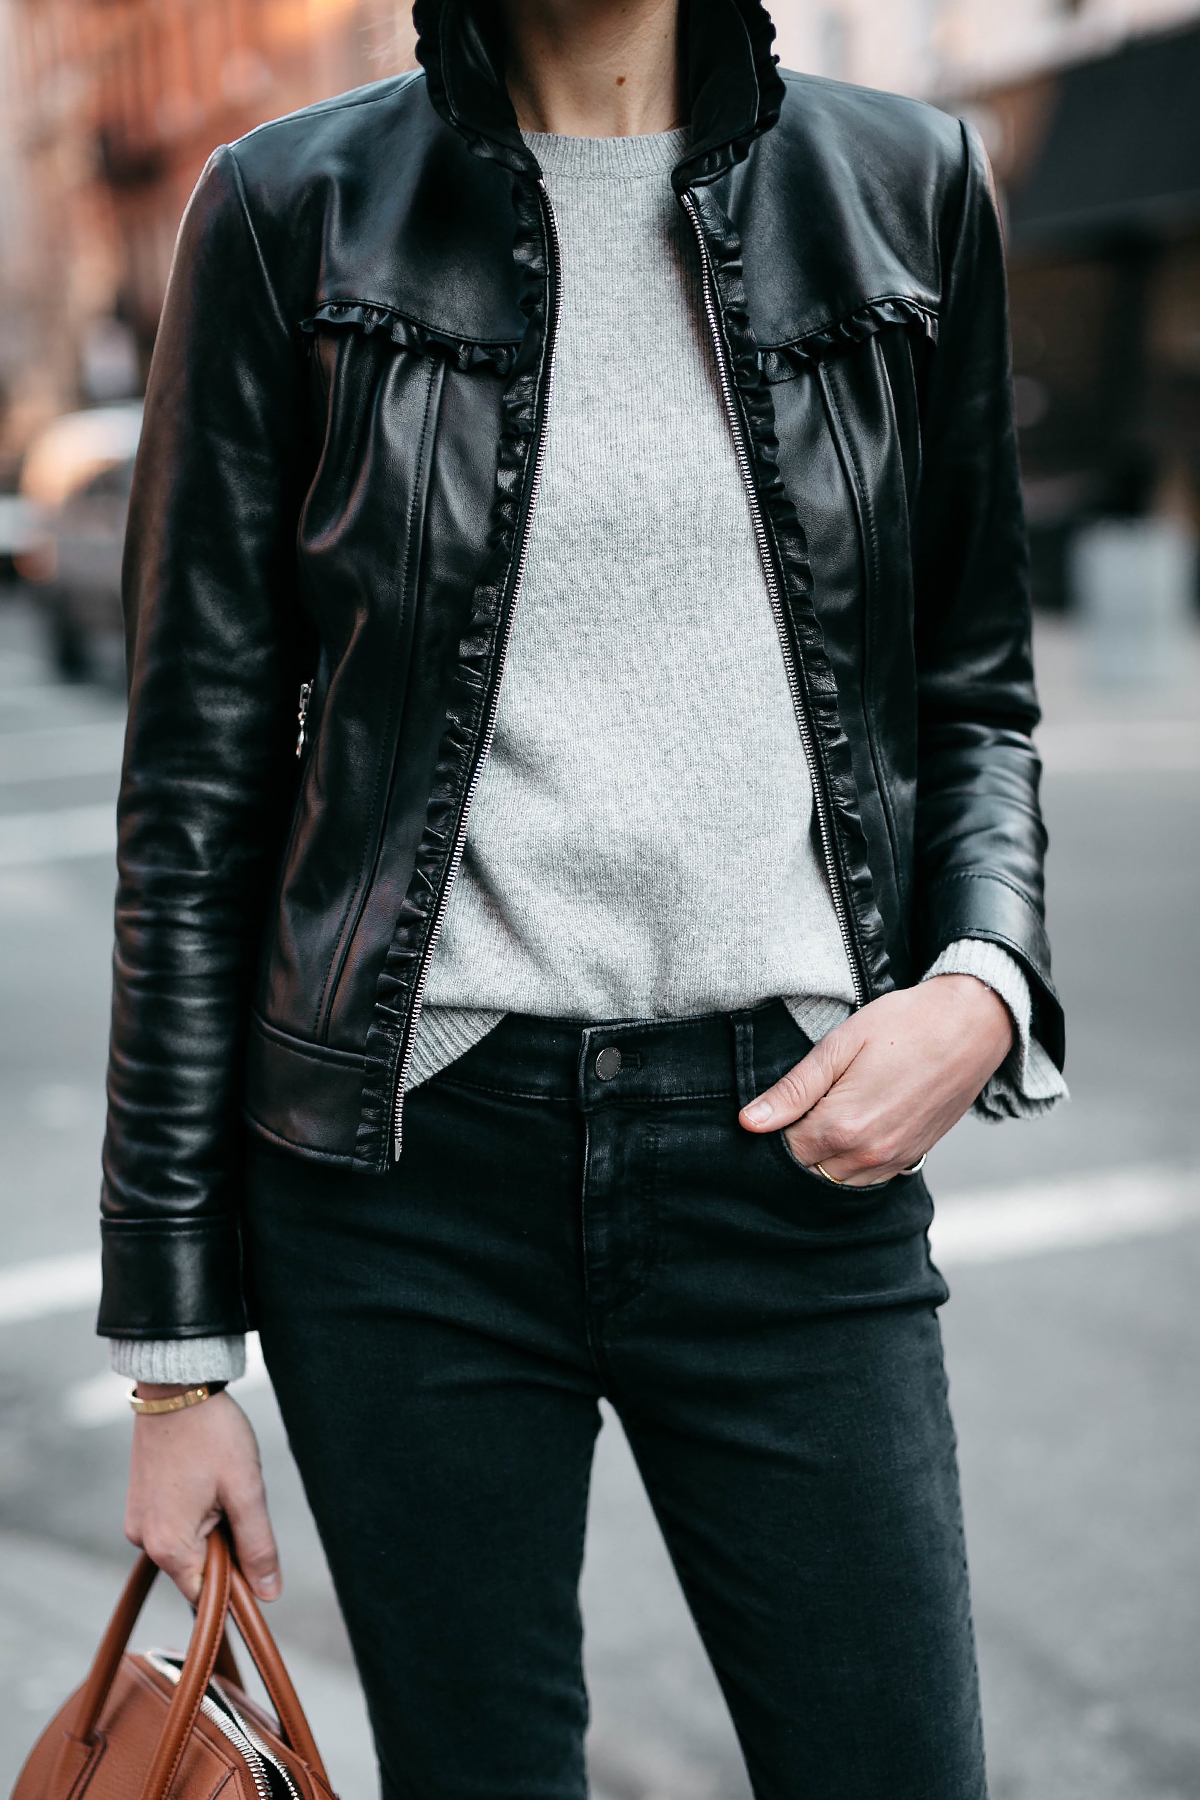 Woman Wearing Ann Taylor Black Leather Jacket Grey Sweater Black Skinny Jeans Fashion Jackson Dallas Blogger Fashion Blogger Street Style New York Fashion Week